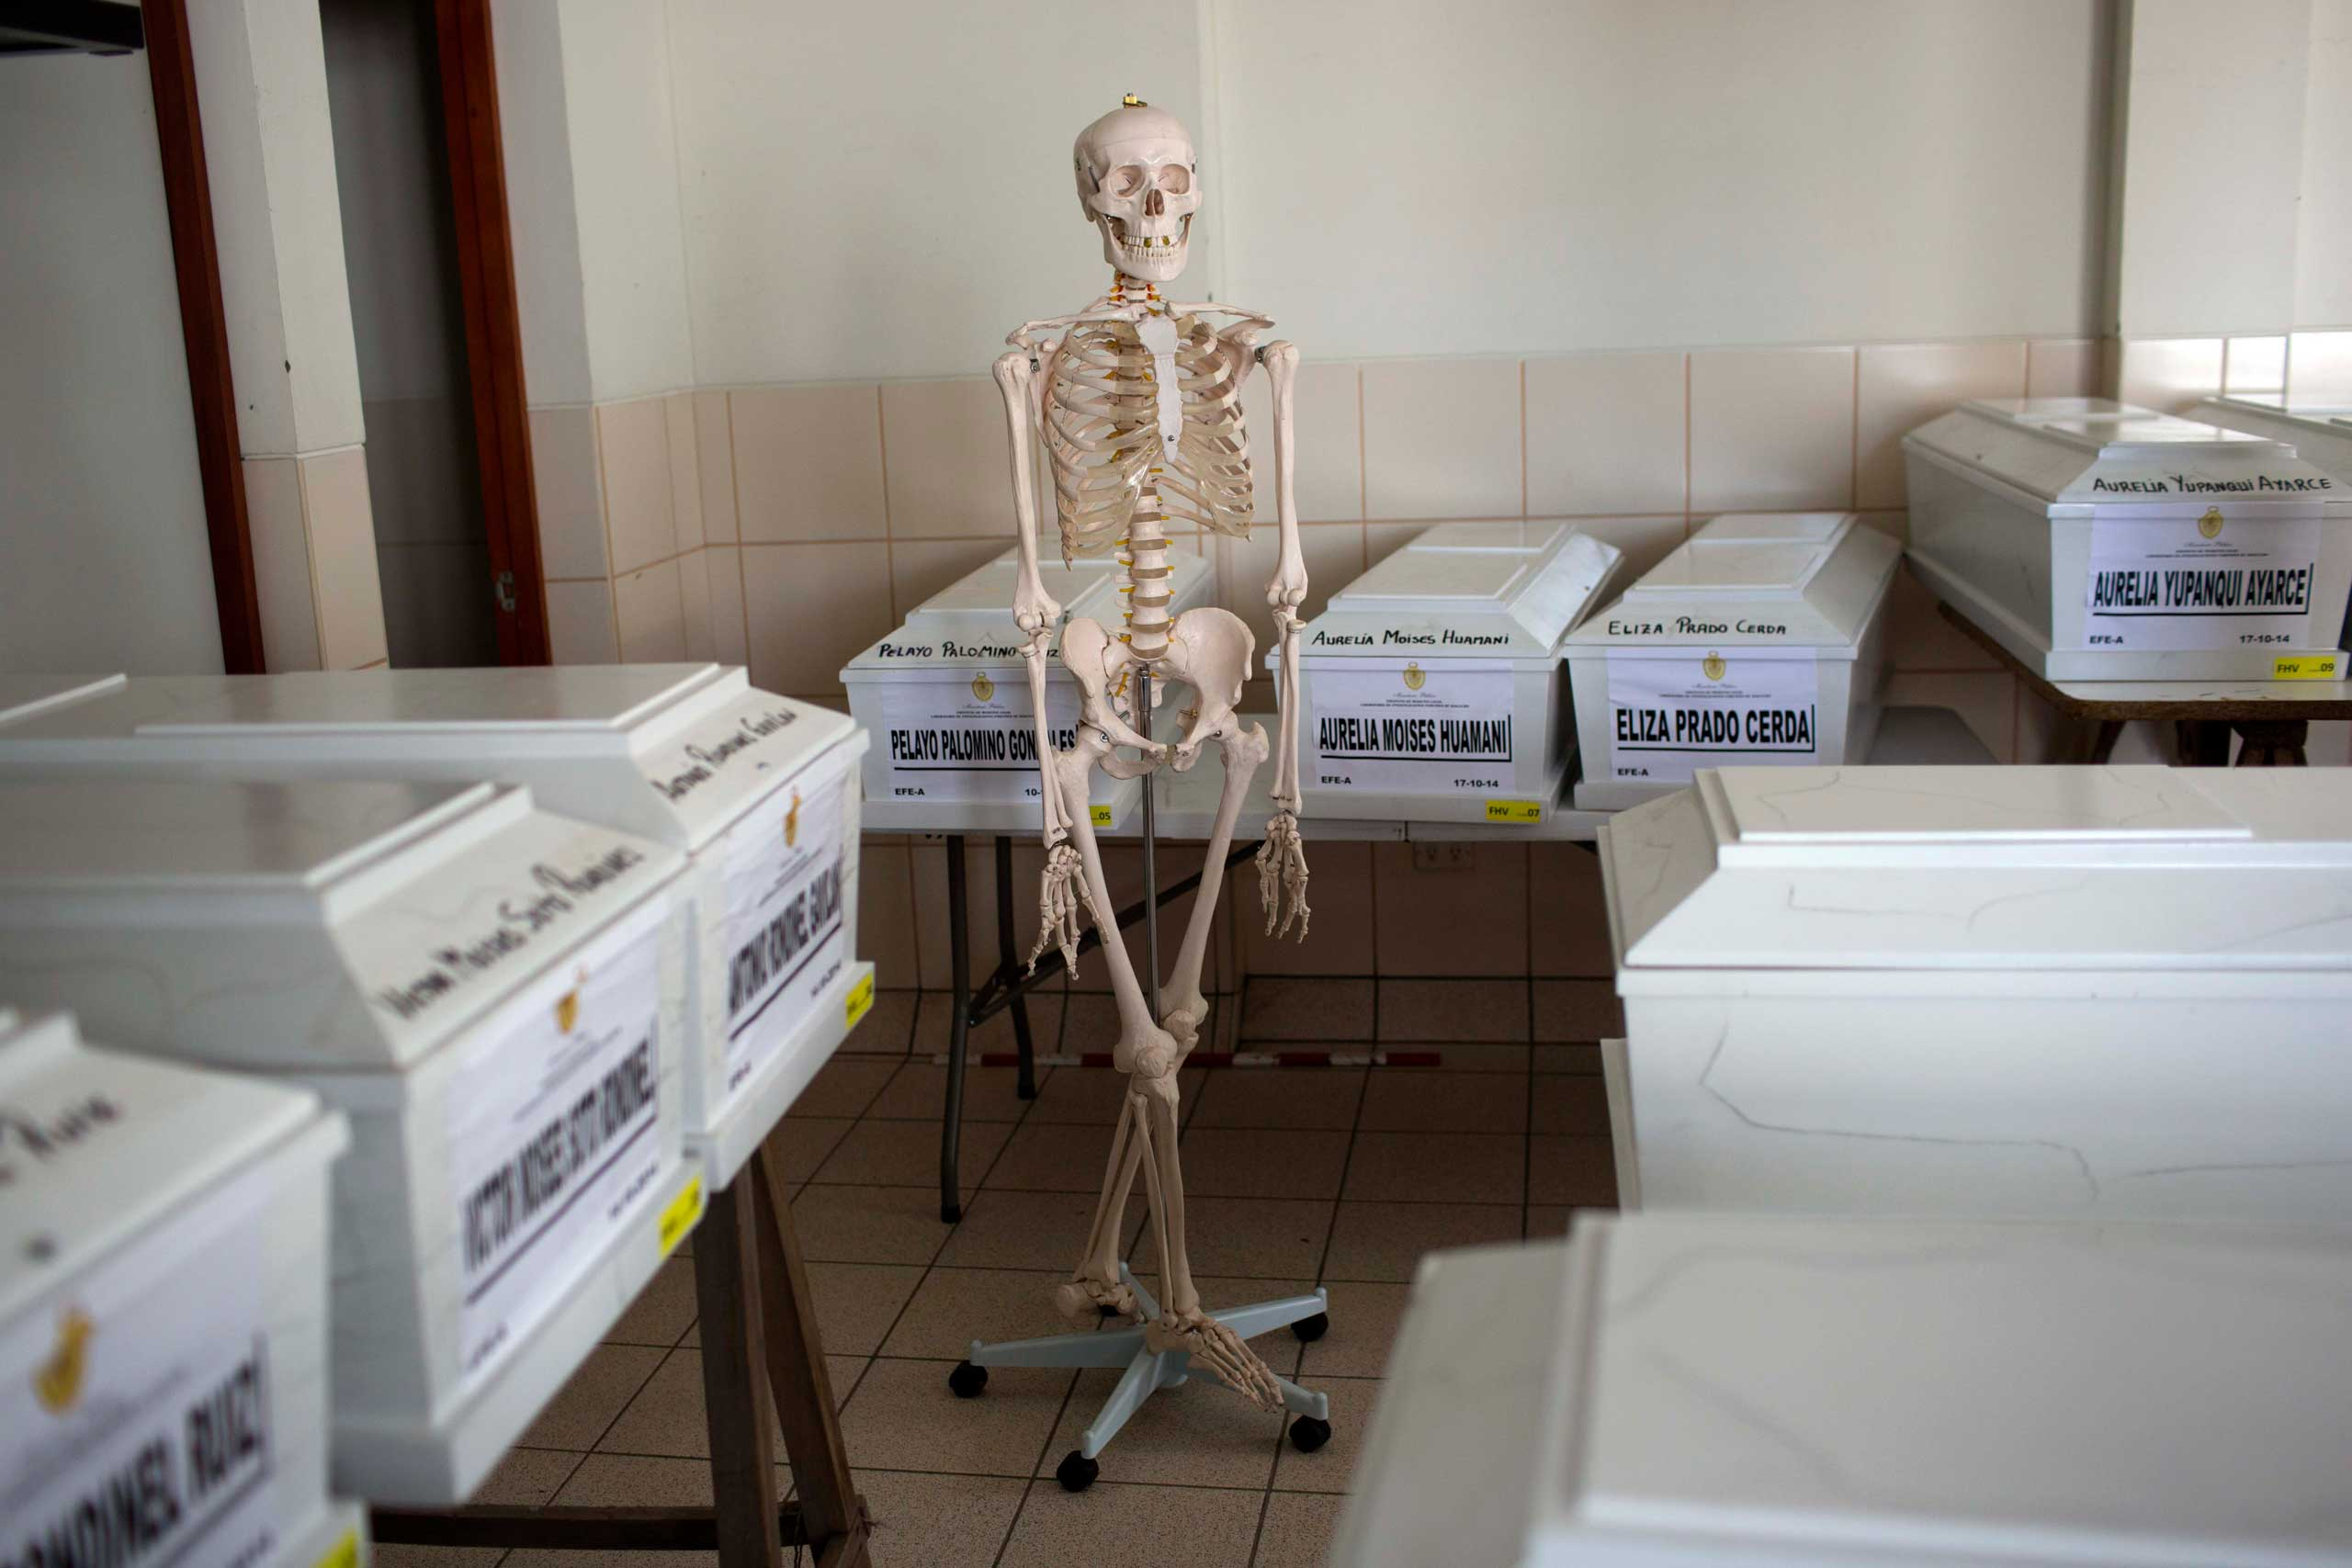 Oct. 26, 2014. A human skeletal anatomy model hangs on a stand in a forensic laboratory in Huamanga, Peru, surrounded by coffins containing the exhumed remains of people slain three decades ago during the country's dirty war. Since 2006, forensic teams have been exhuming victims of Peruís 1980-2000 internal conflict, recovering 2,925 sets of remains.